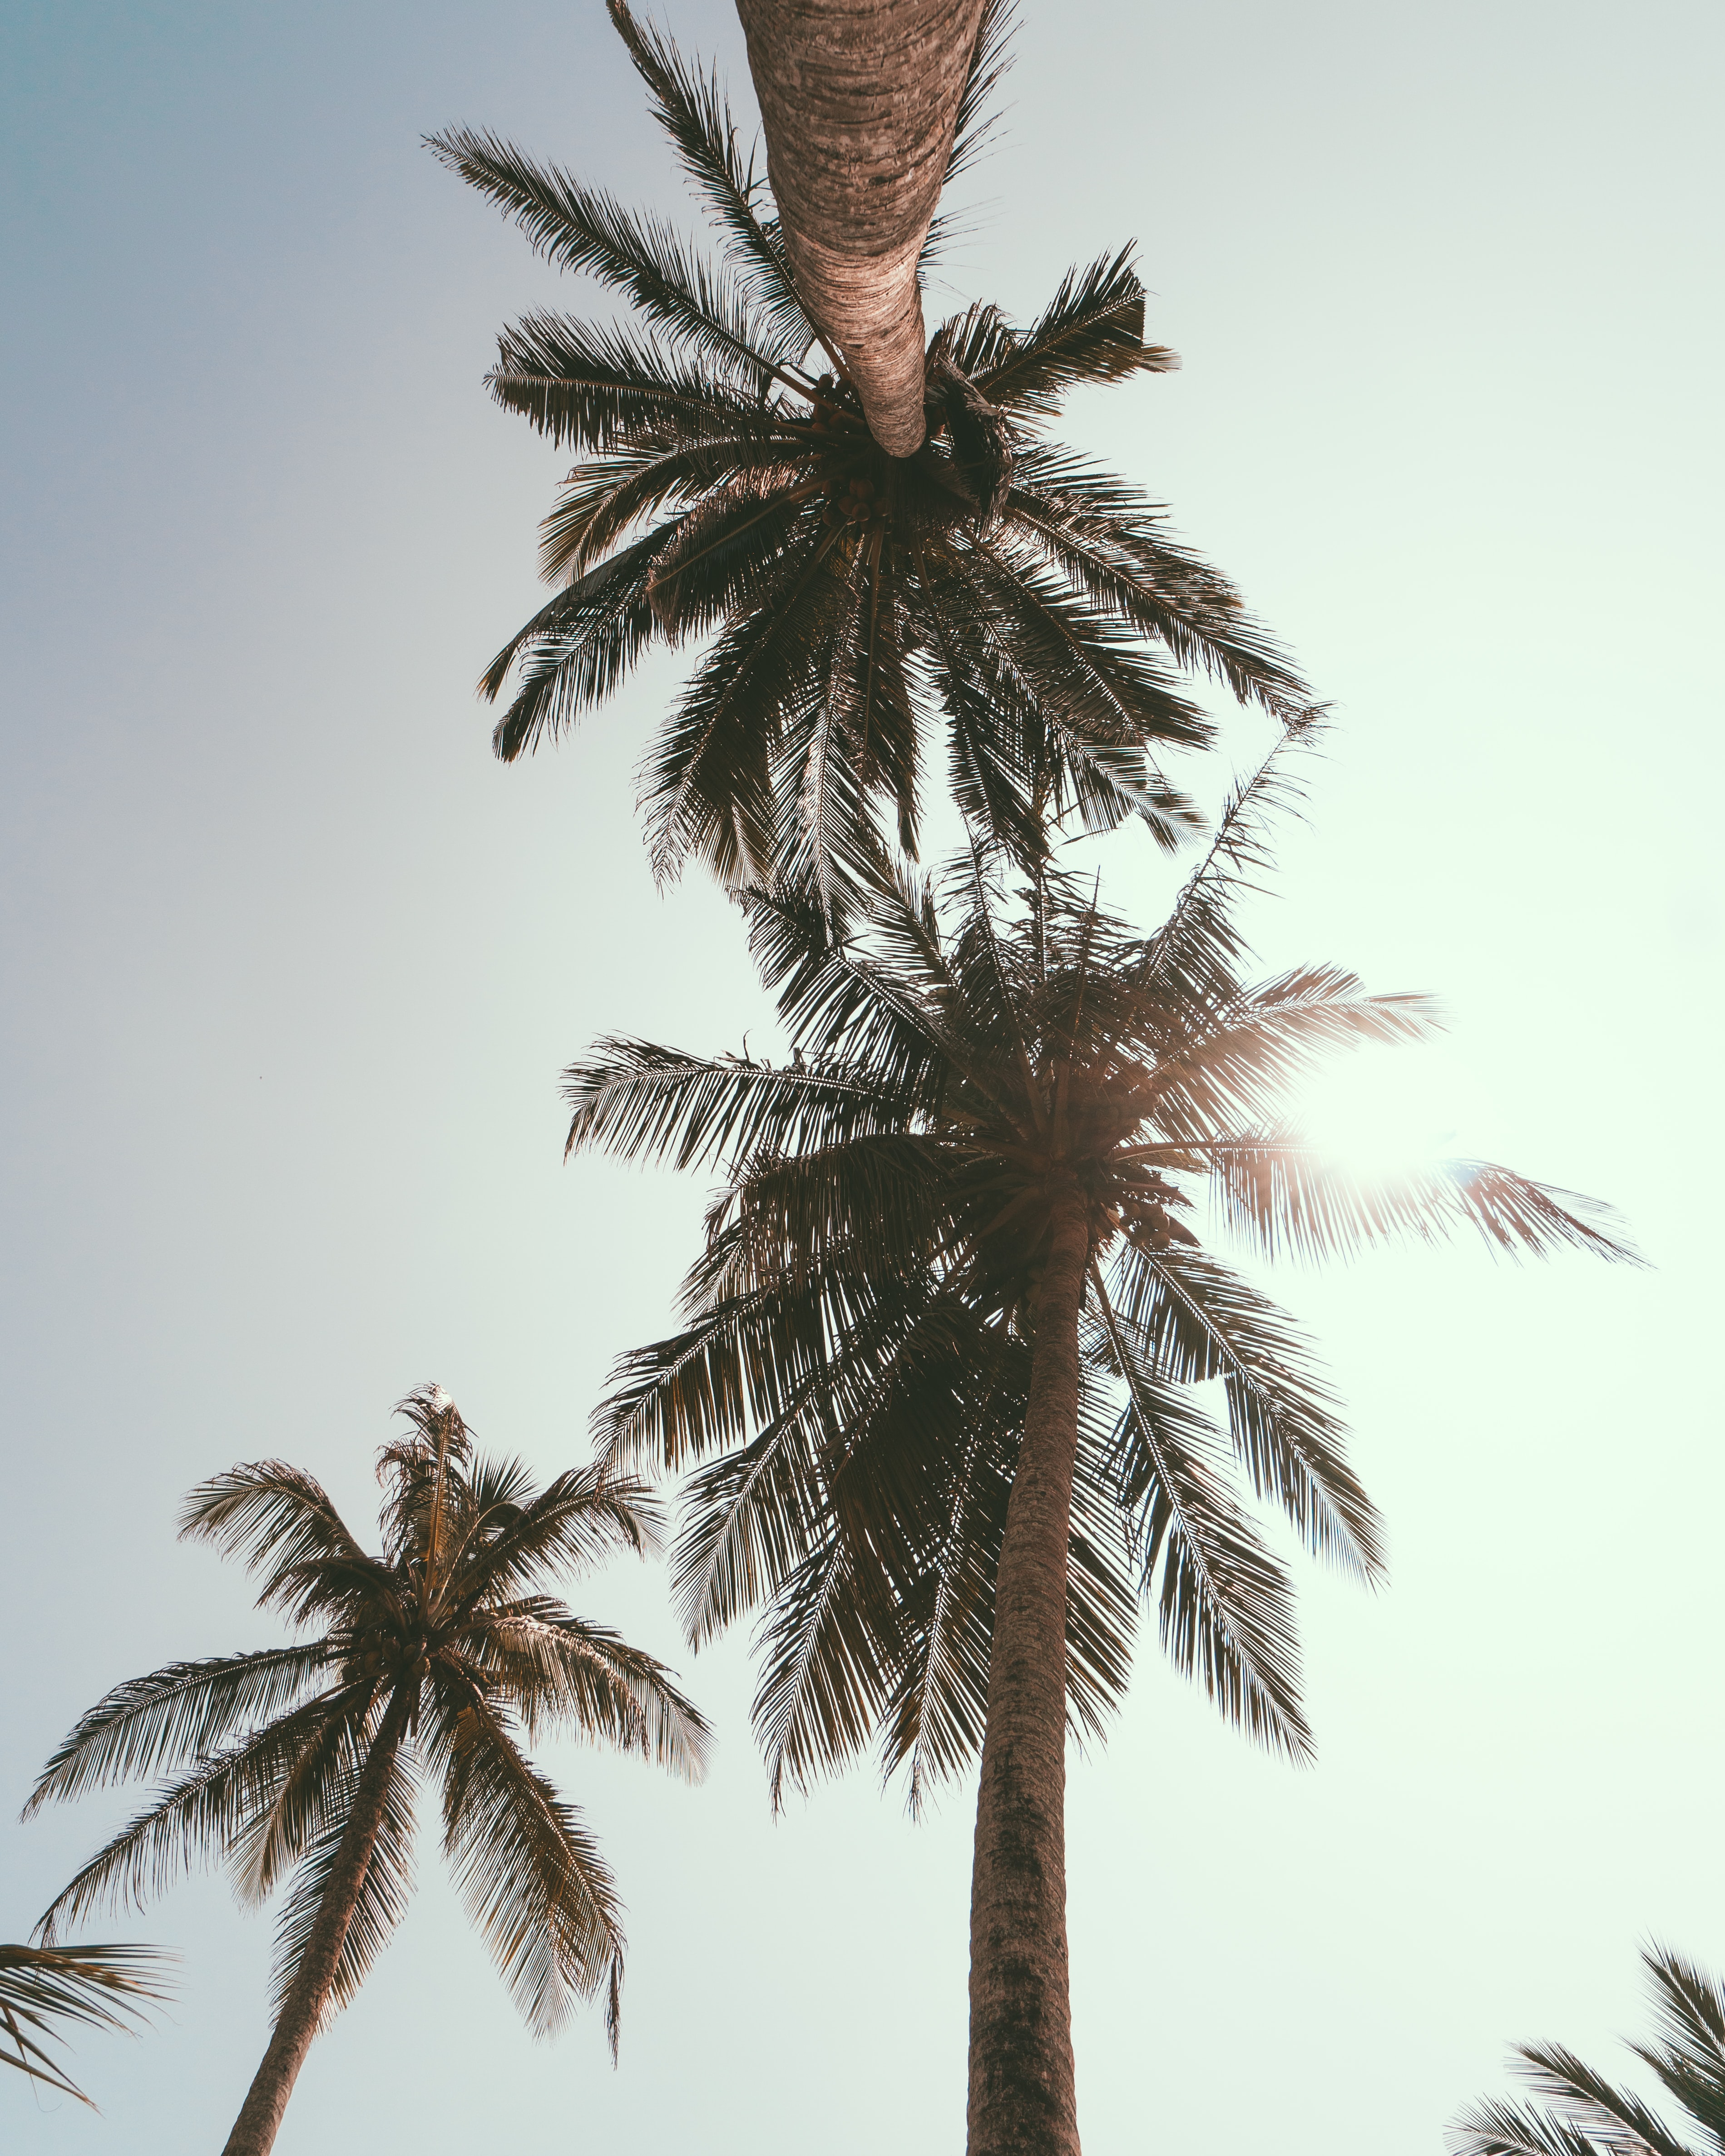 worm's eye view photo of palm trees